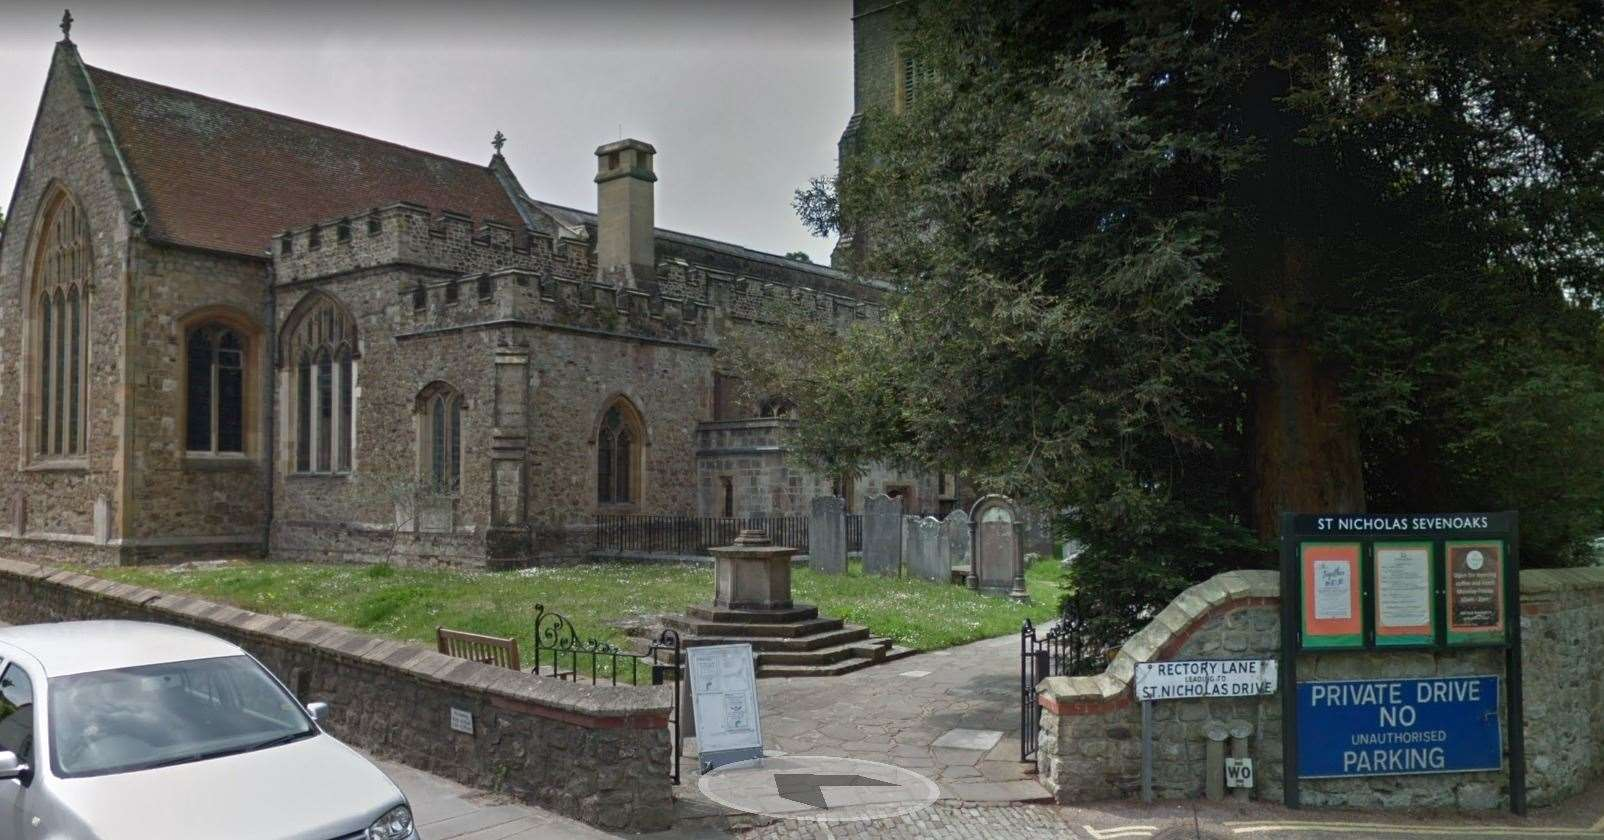 St Nicholas Church, Rectory Lane in Sevenoaks - Picture from Google Maps